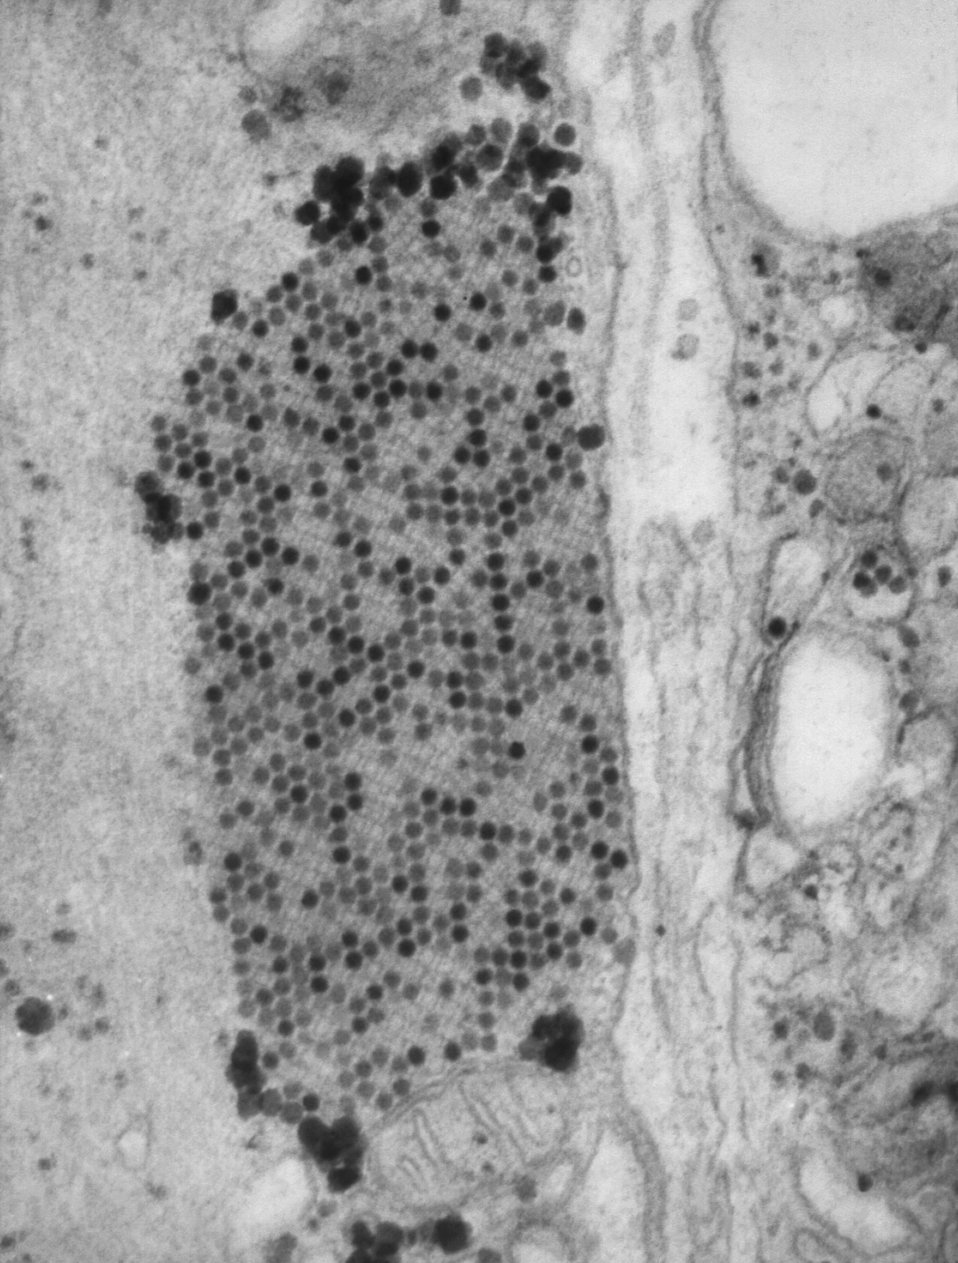 This transmission electron micrograph (TEM) revealed the presence of coxsackie B3 virus particles, which were found withing a specimen of mu